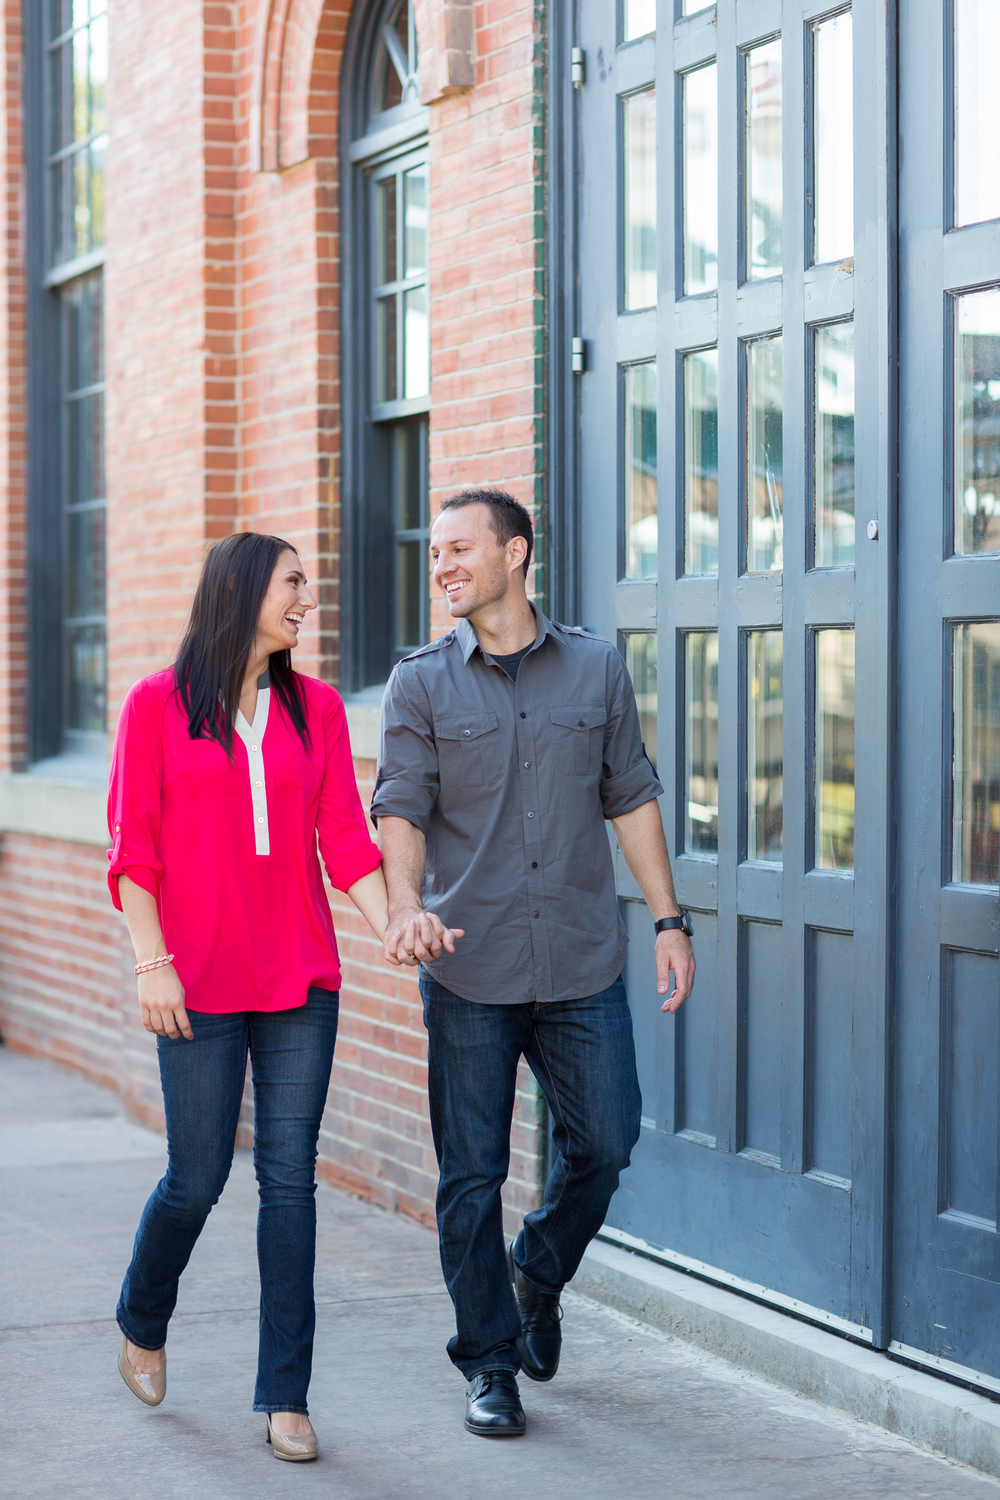 Colorado Engagement Photography by TréCreative (27 of 111).jpg